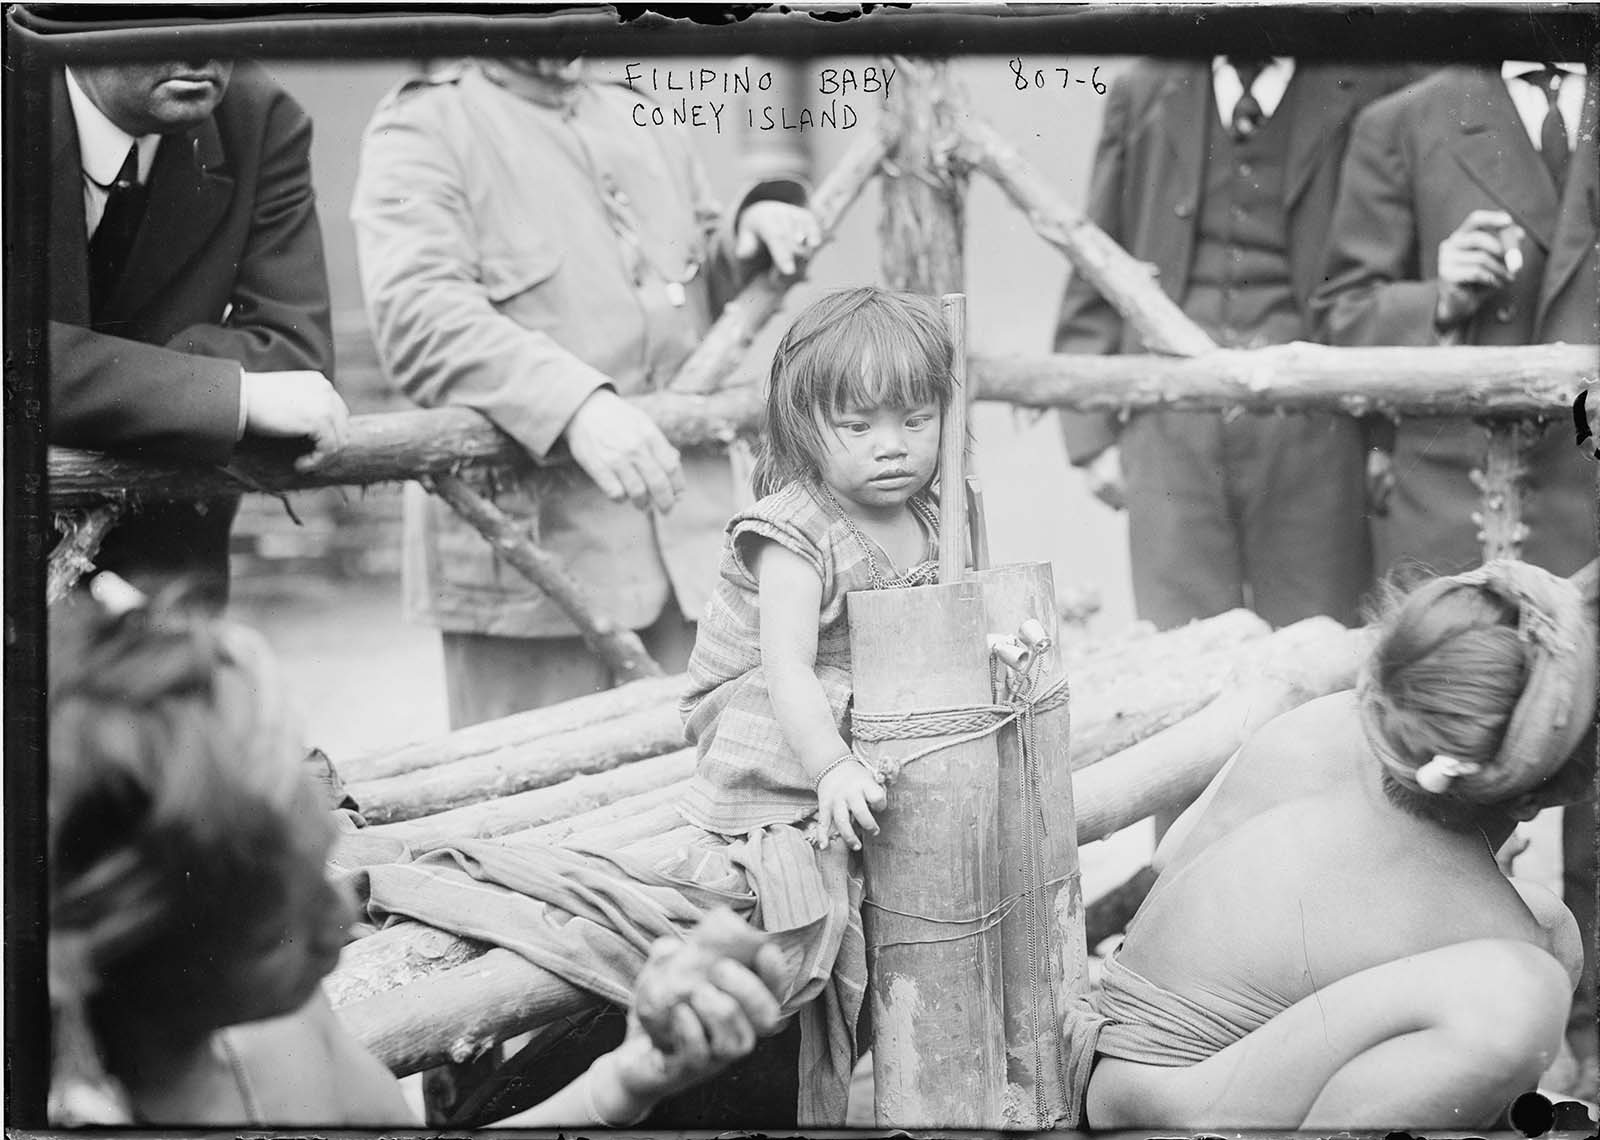 A young Filipino girl is pictured sitting on a wooden bench in an enclosure in Coney Island, New York in another horrifying 1906 'exhibit'.